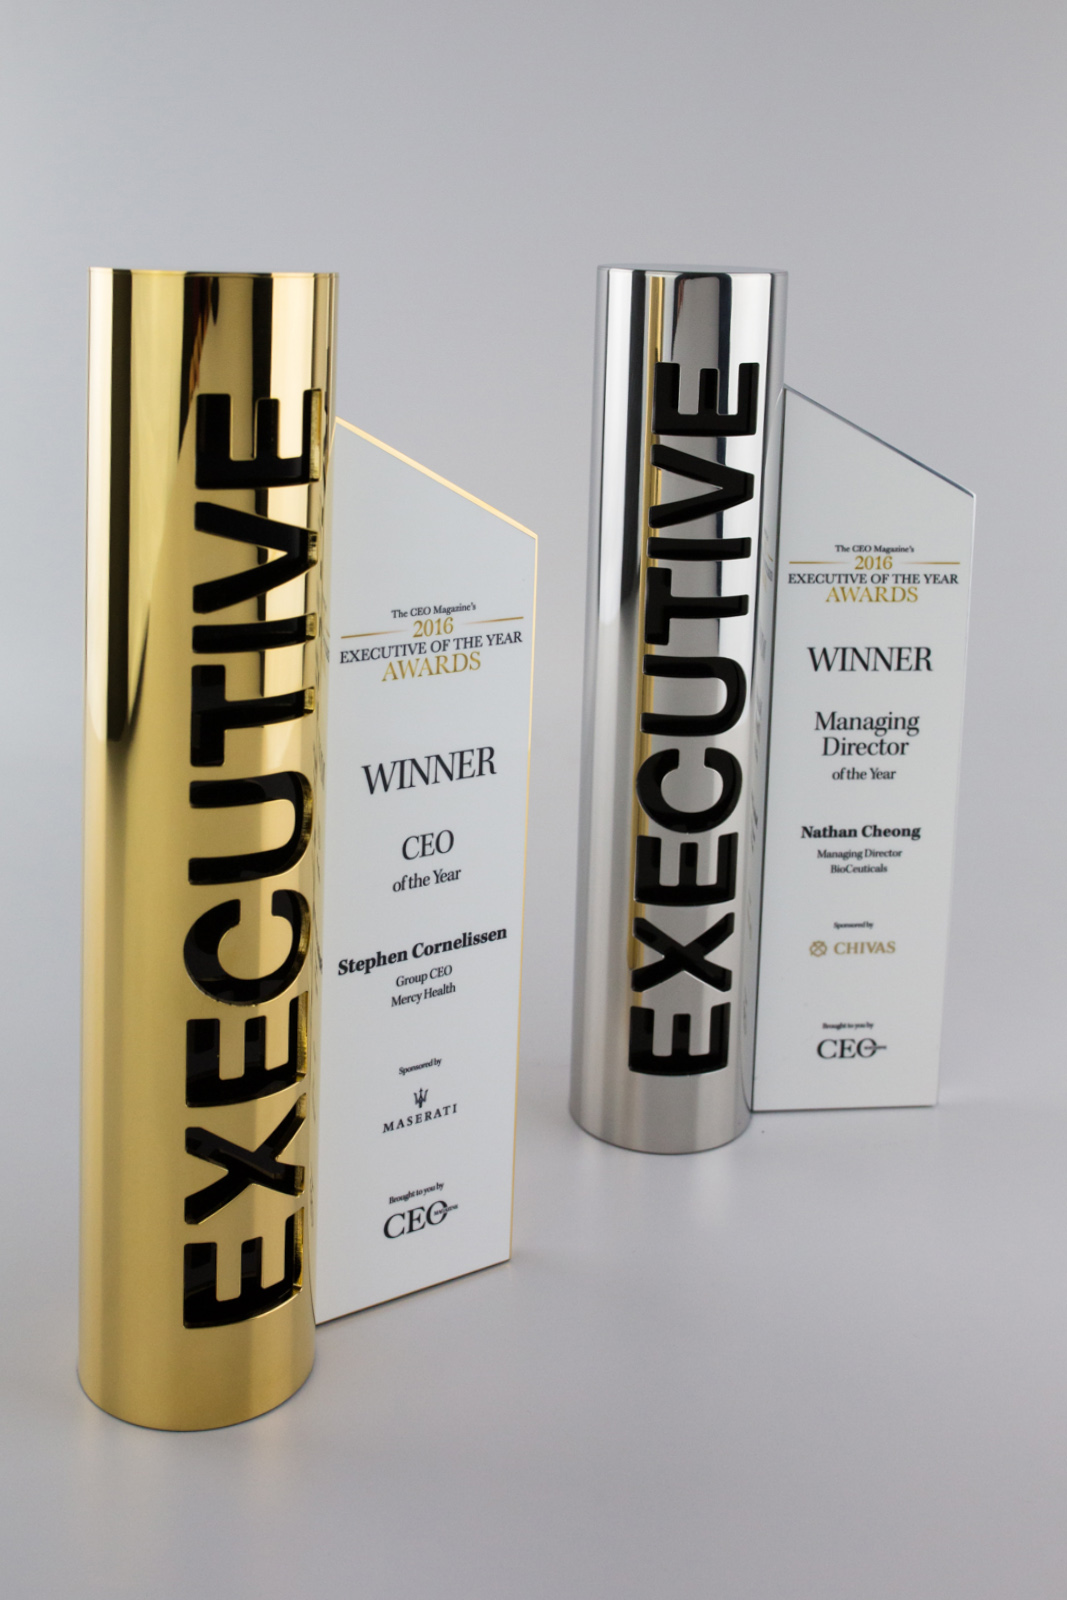 CEO Magazine Award Custom Trophies